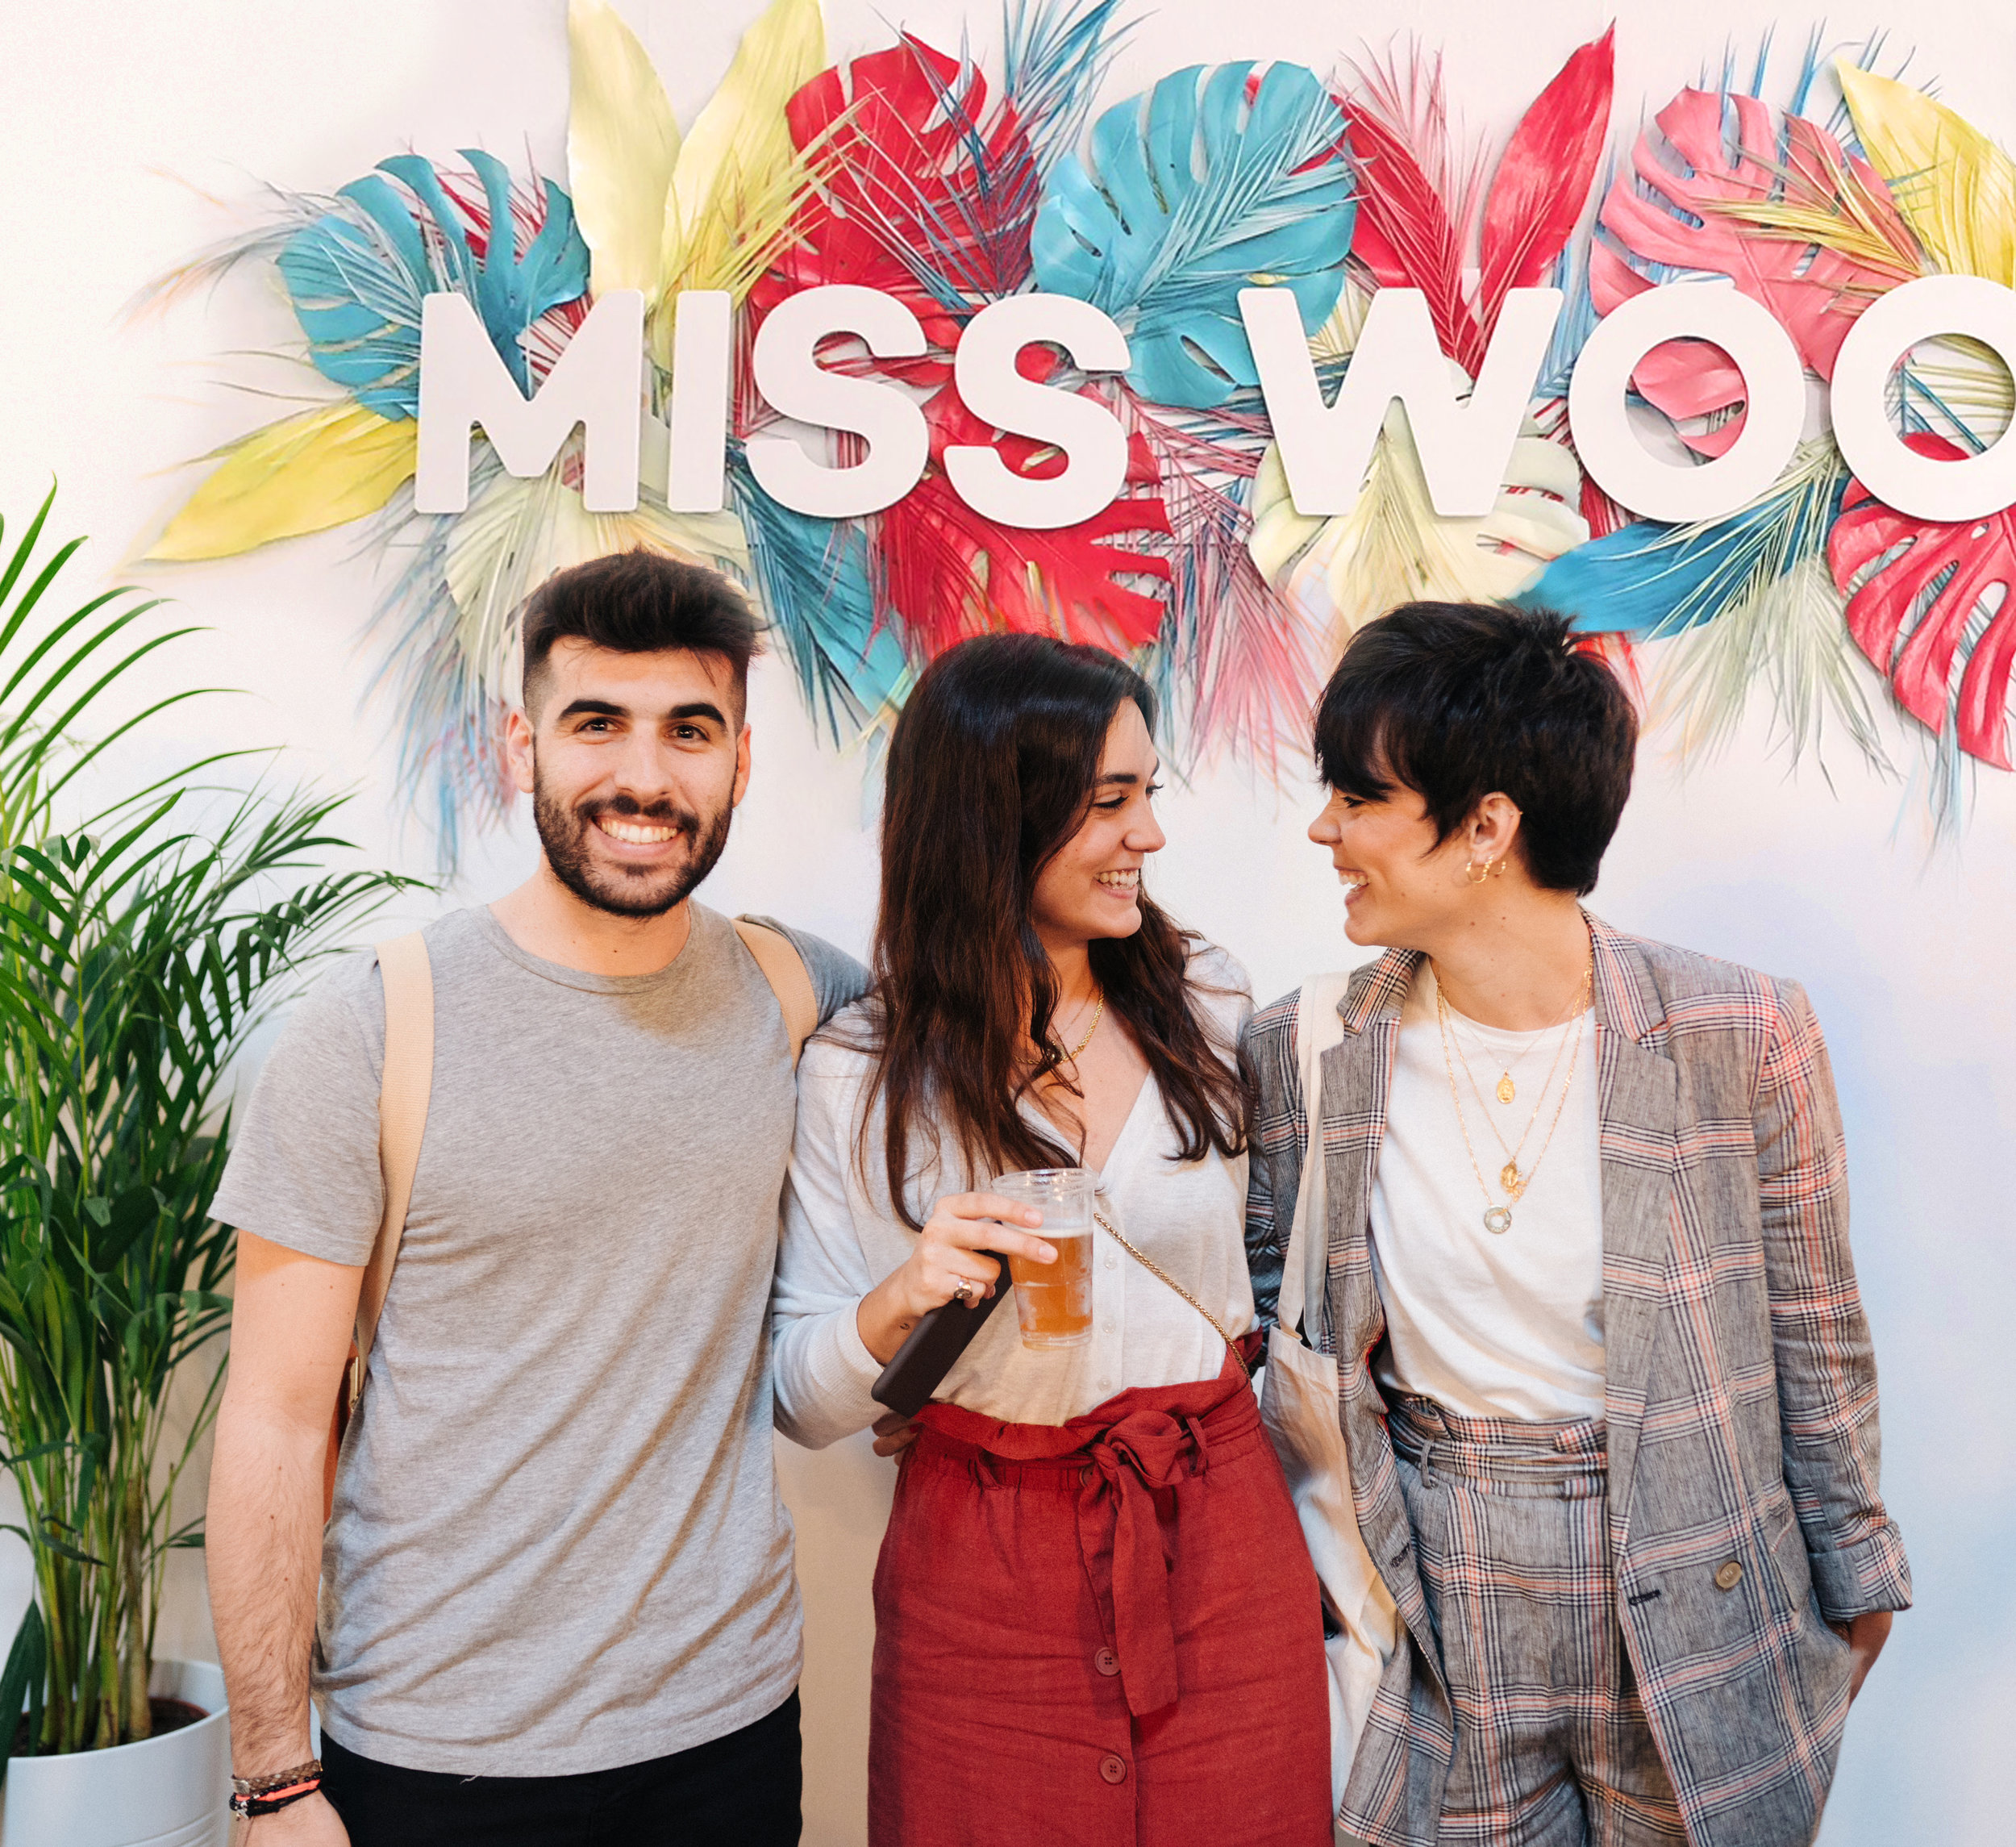 Evento-MissWood-27lletres.jpg